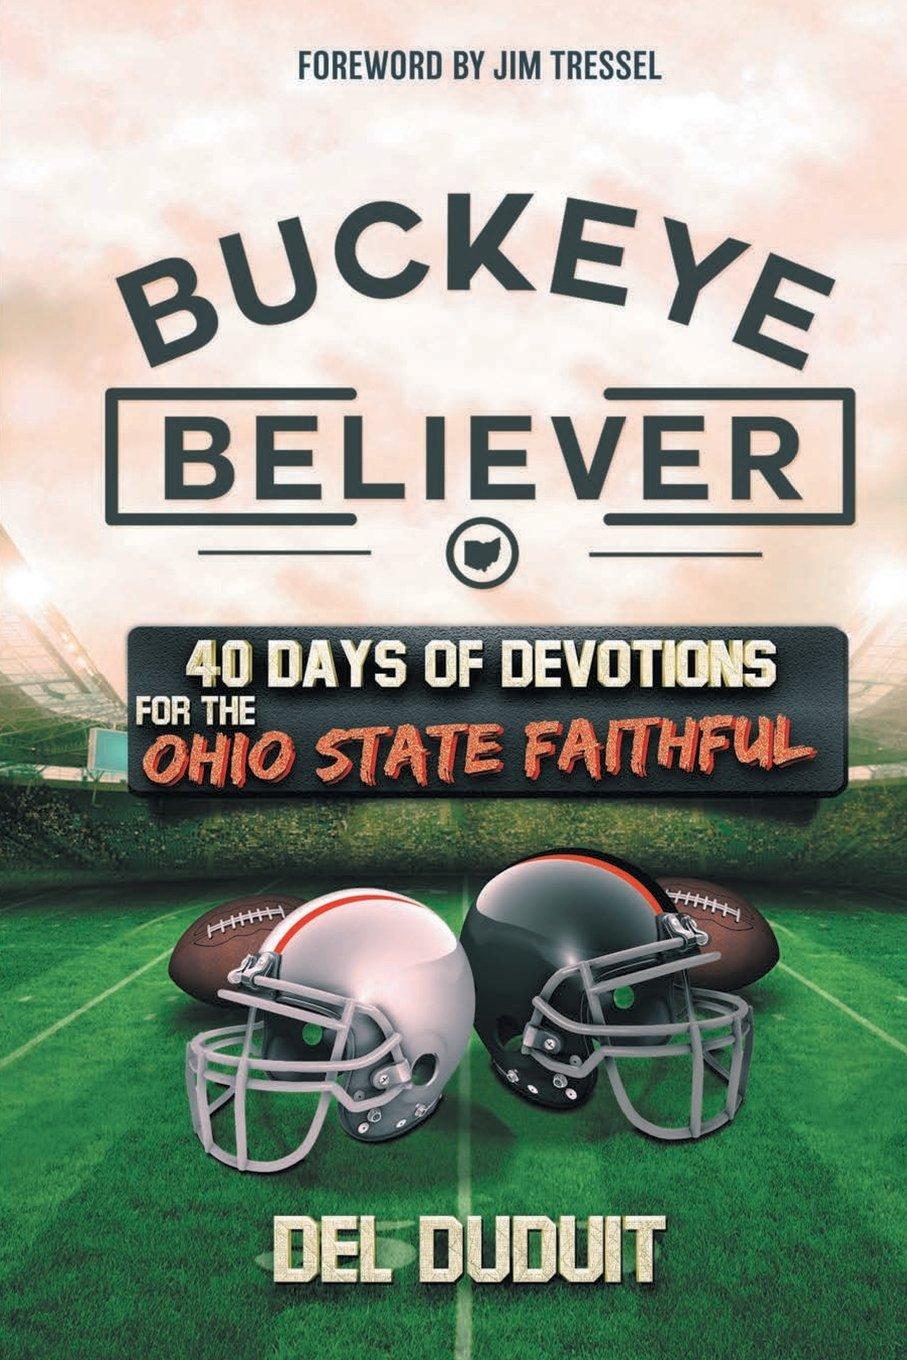 Buckeye Believer: 40 Days of Devotions for the Ohio State Faithful: Del  Duduit: 9781640710184: Amazon.com: Books